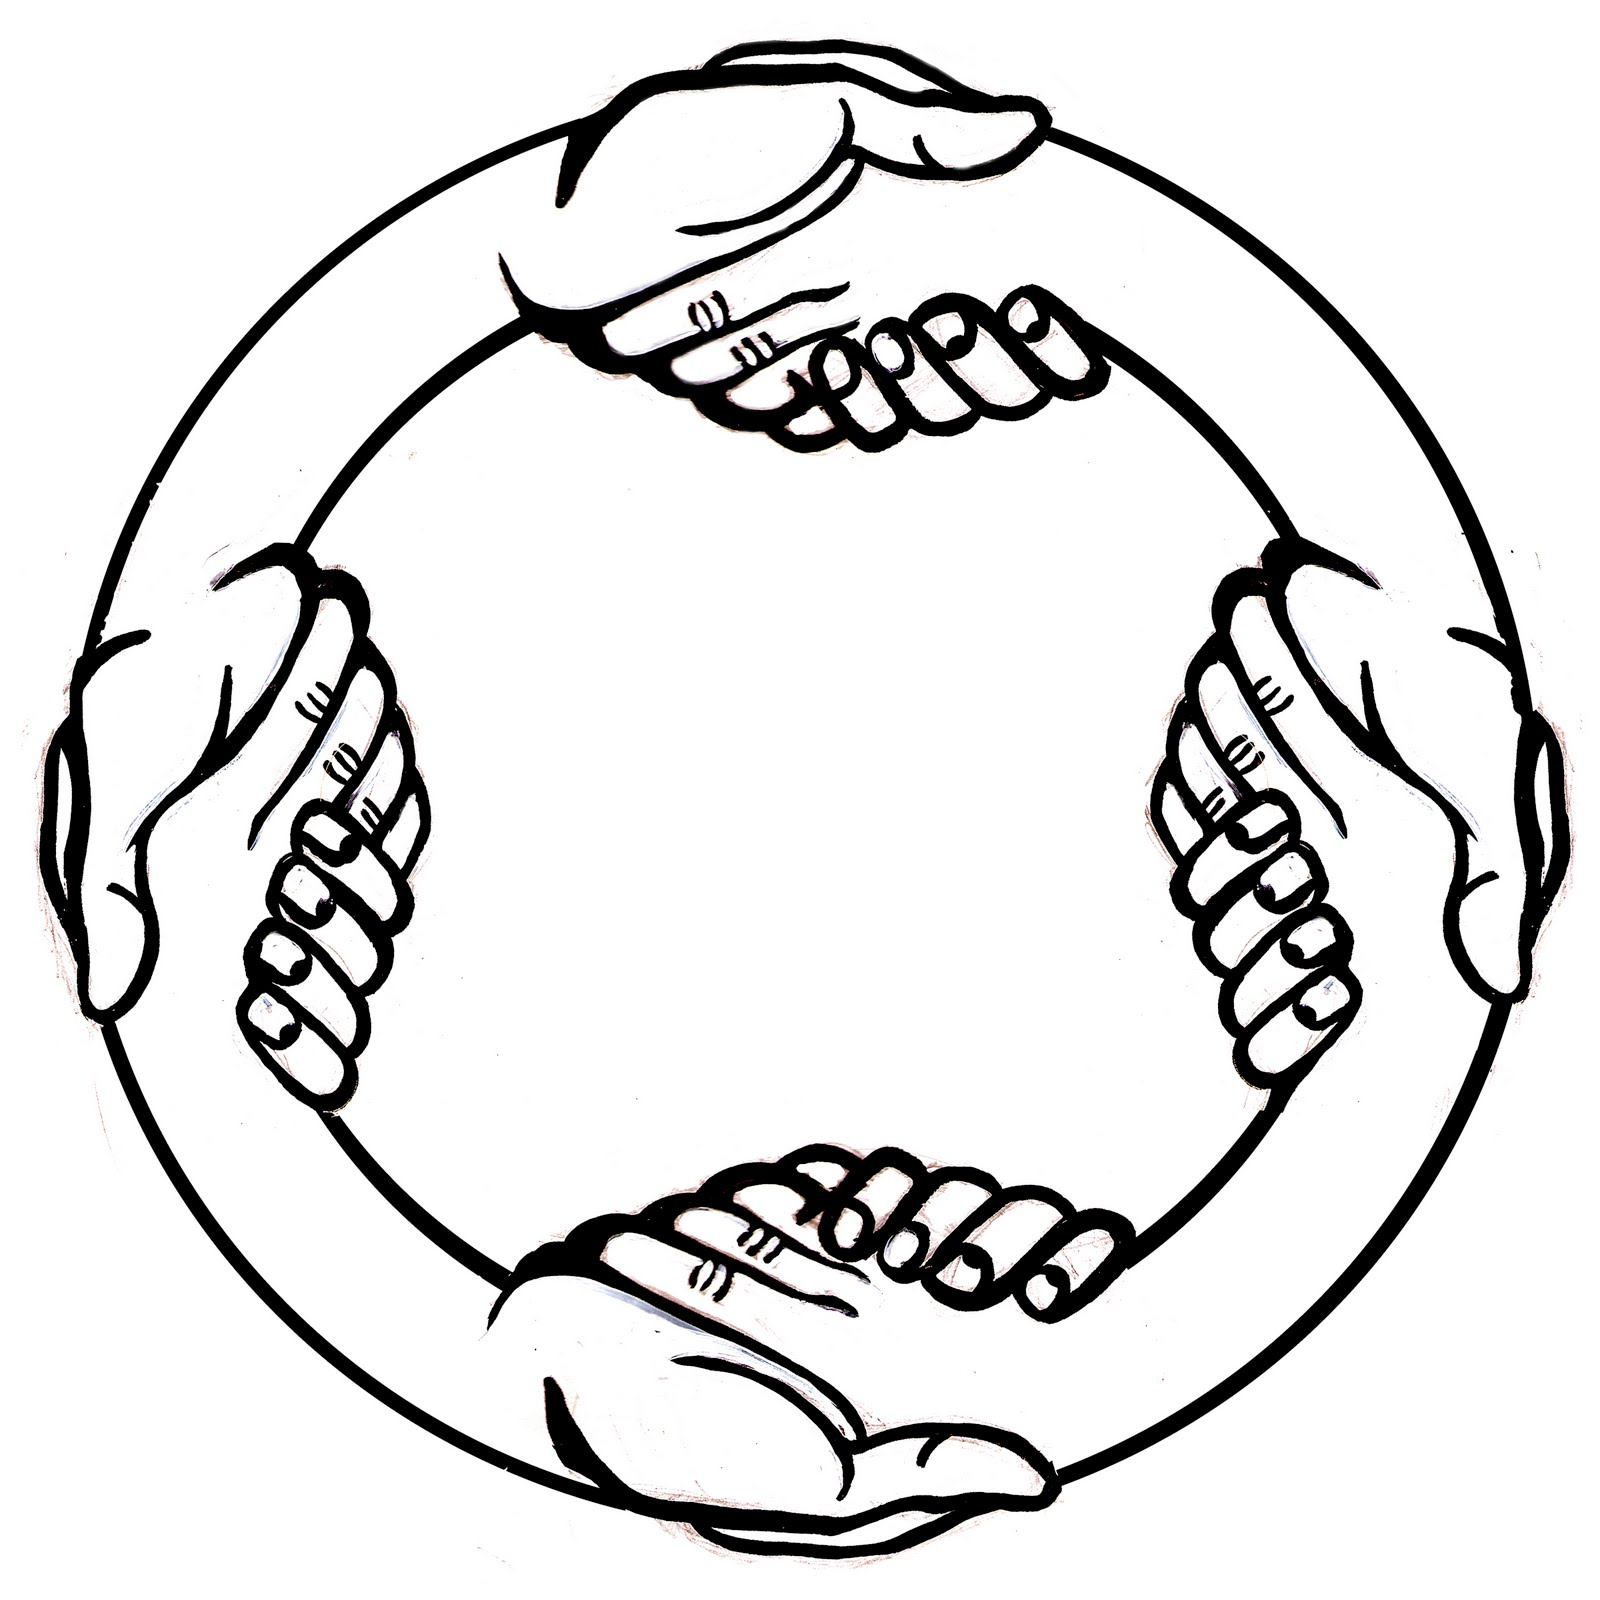 Free Handshake Clipart Pictures